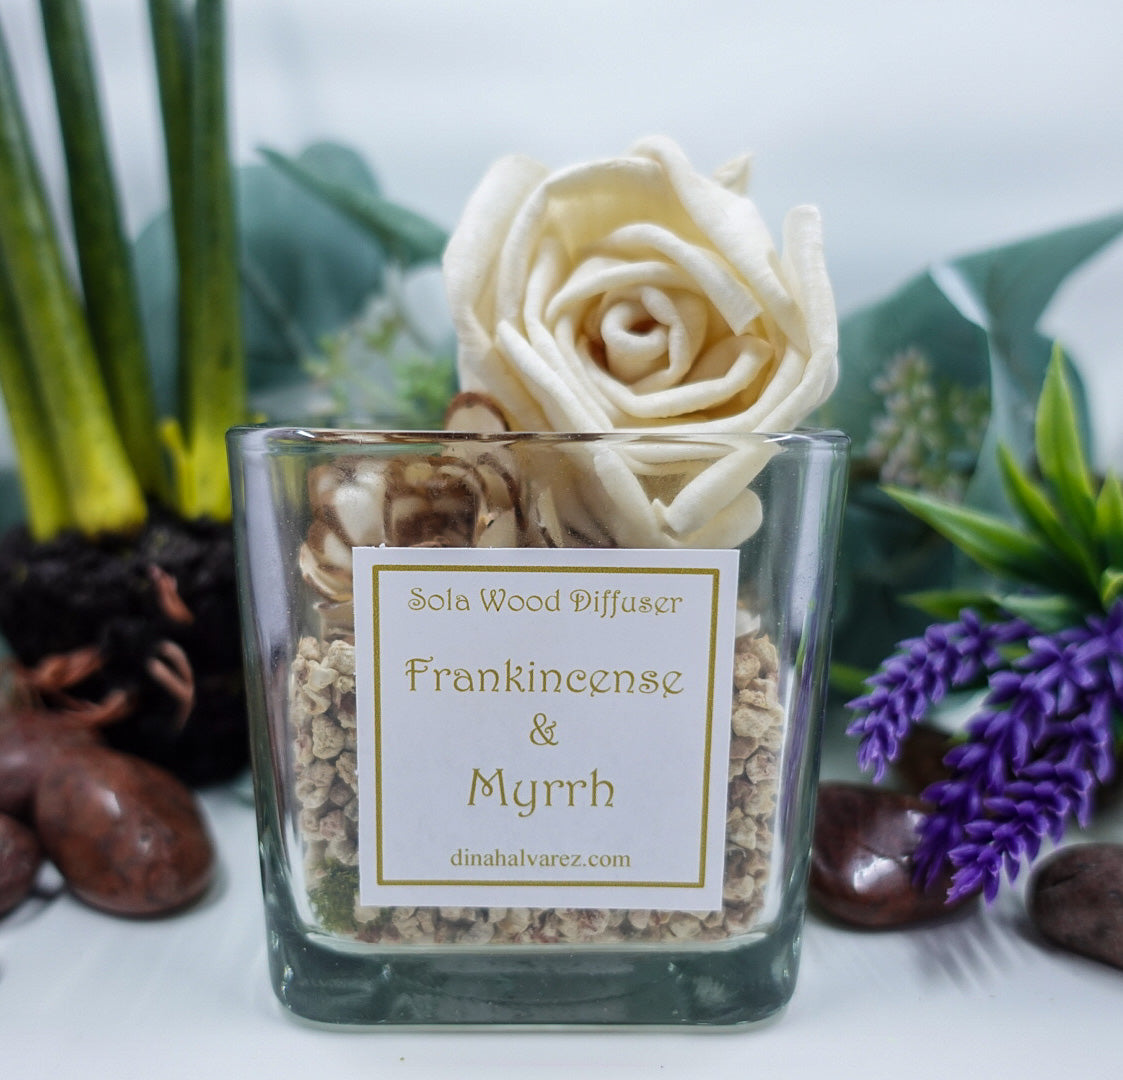 Frankincense and Myrrh Sola Wood Diffuser